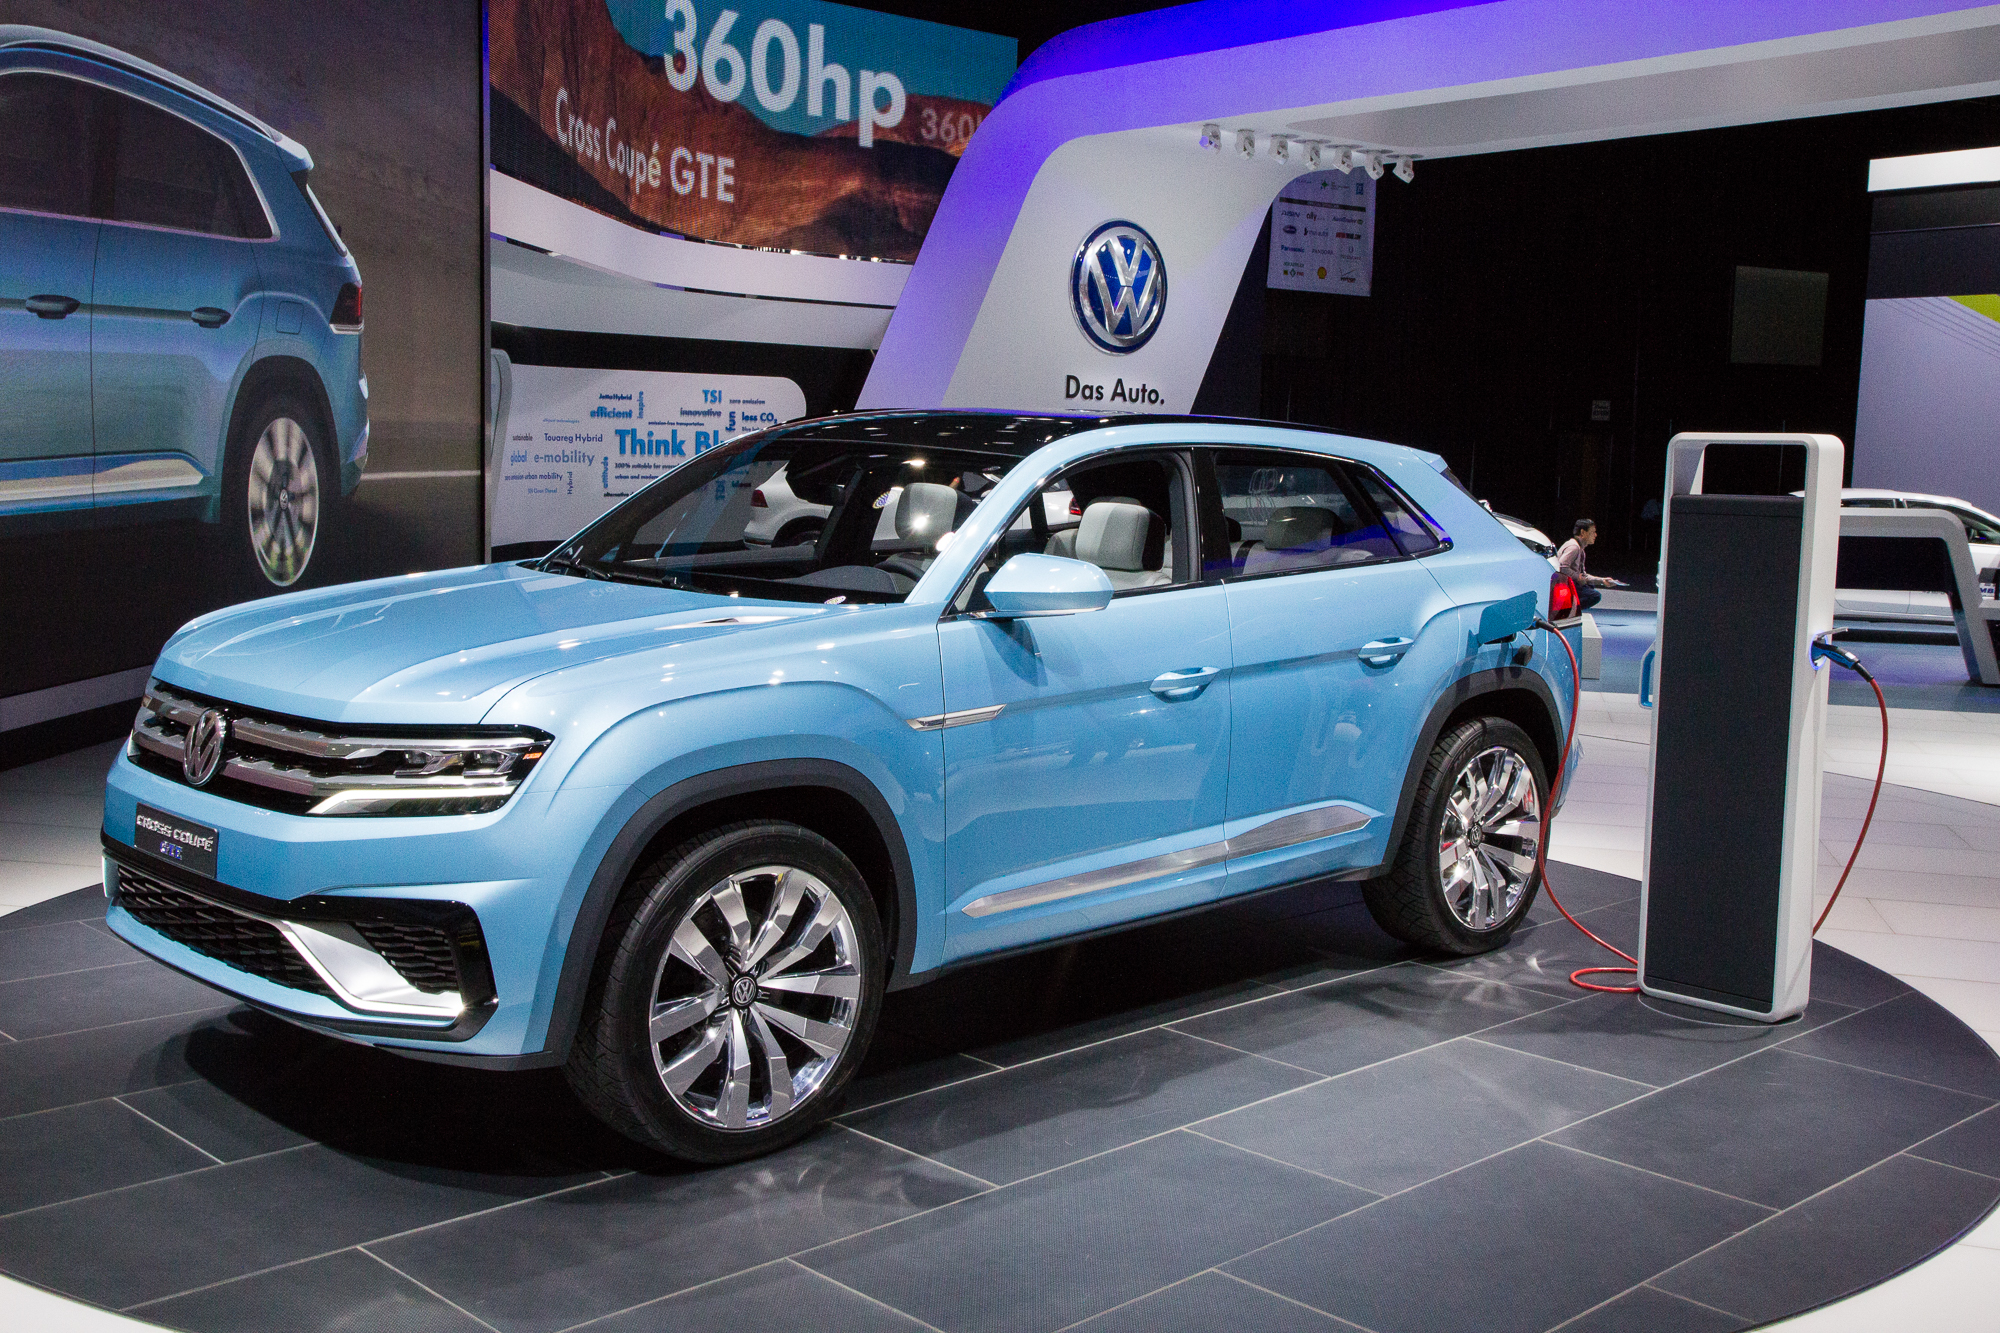 volkswagen cross coupe plug in hybrid concept mid size suv previewed for 2016. Black Bedroom Furniture Sets. Home Design Ideas